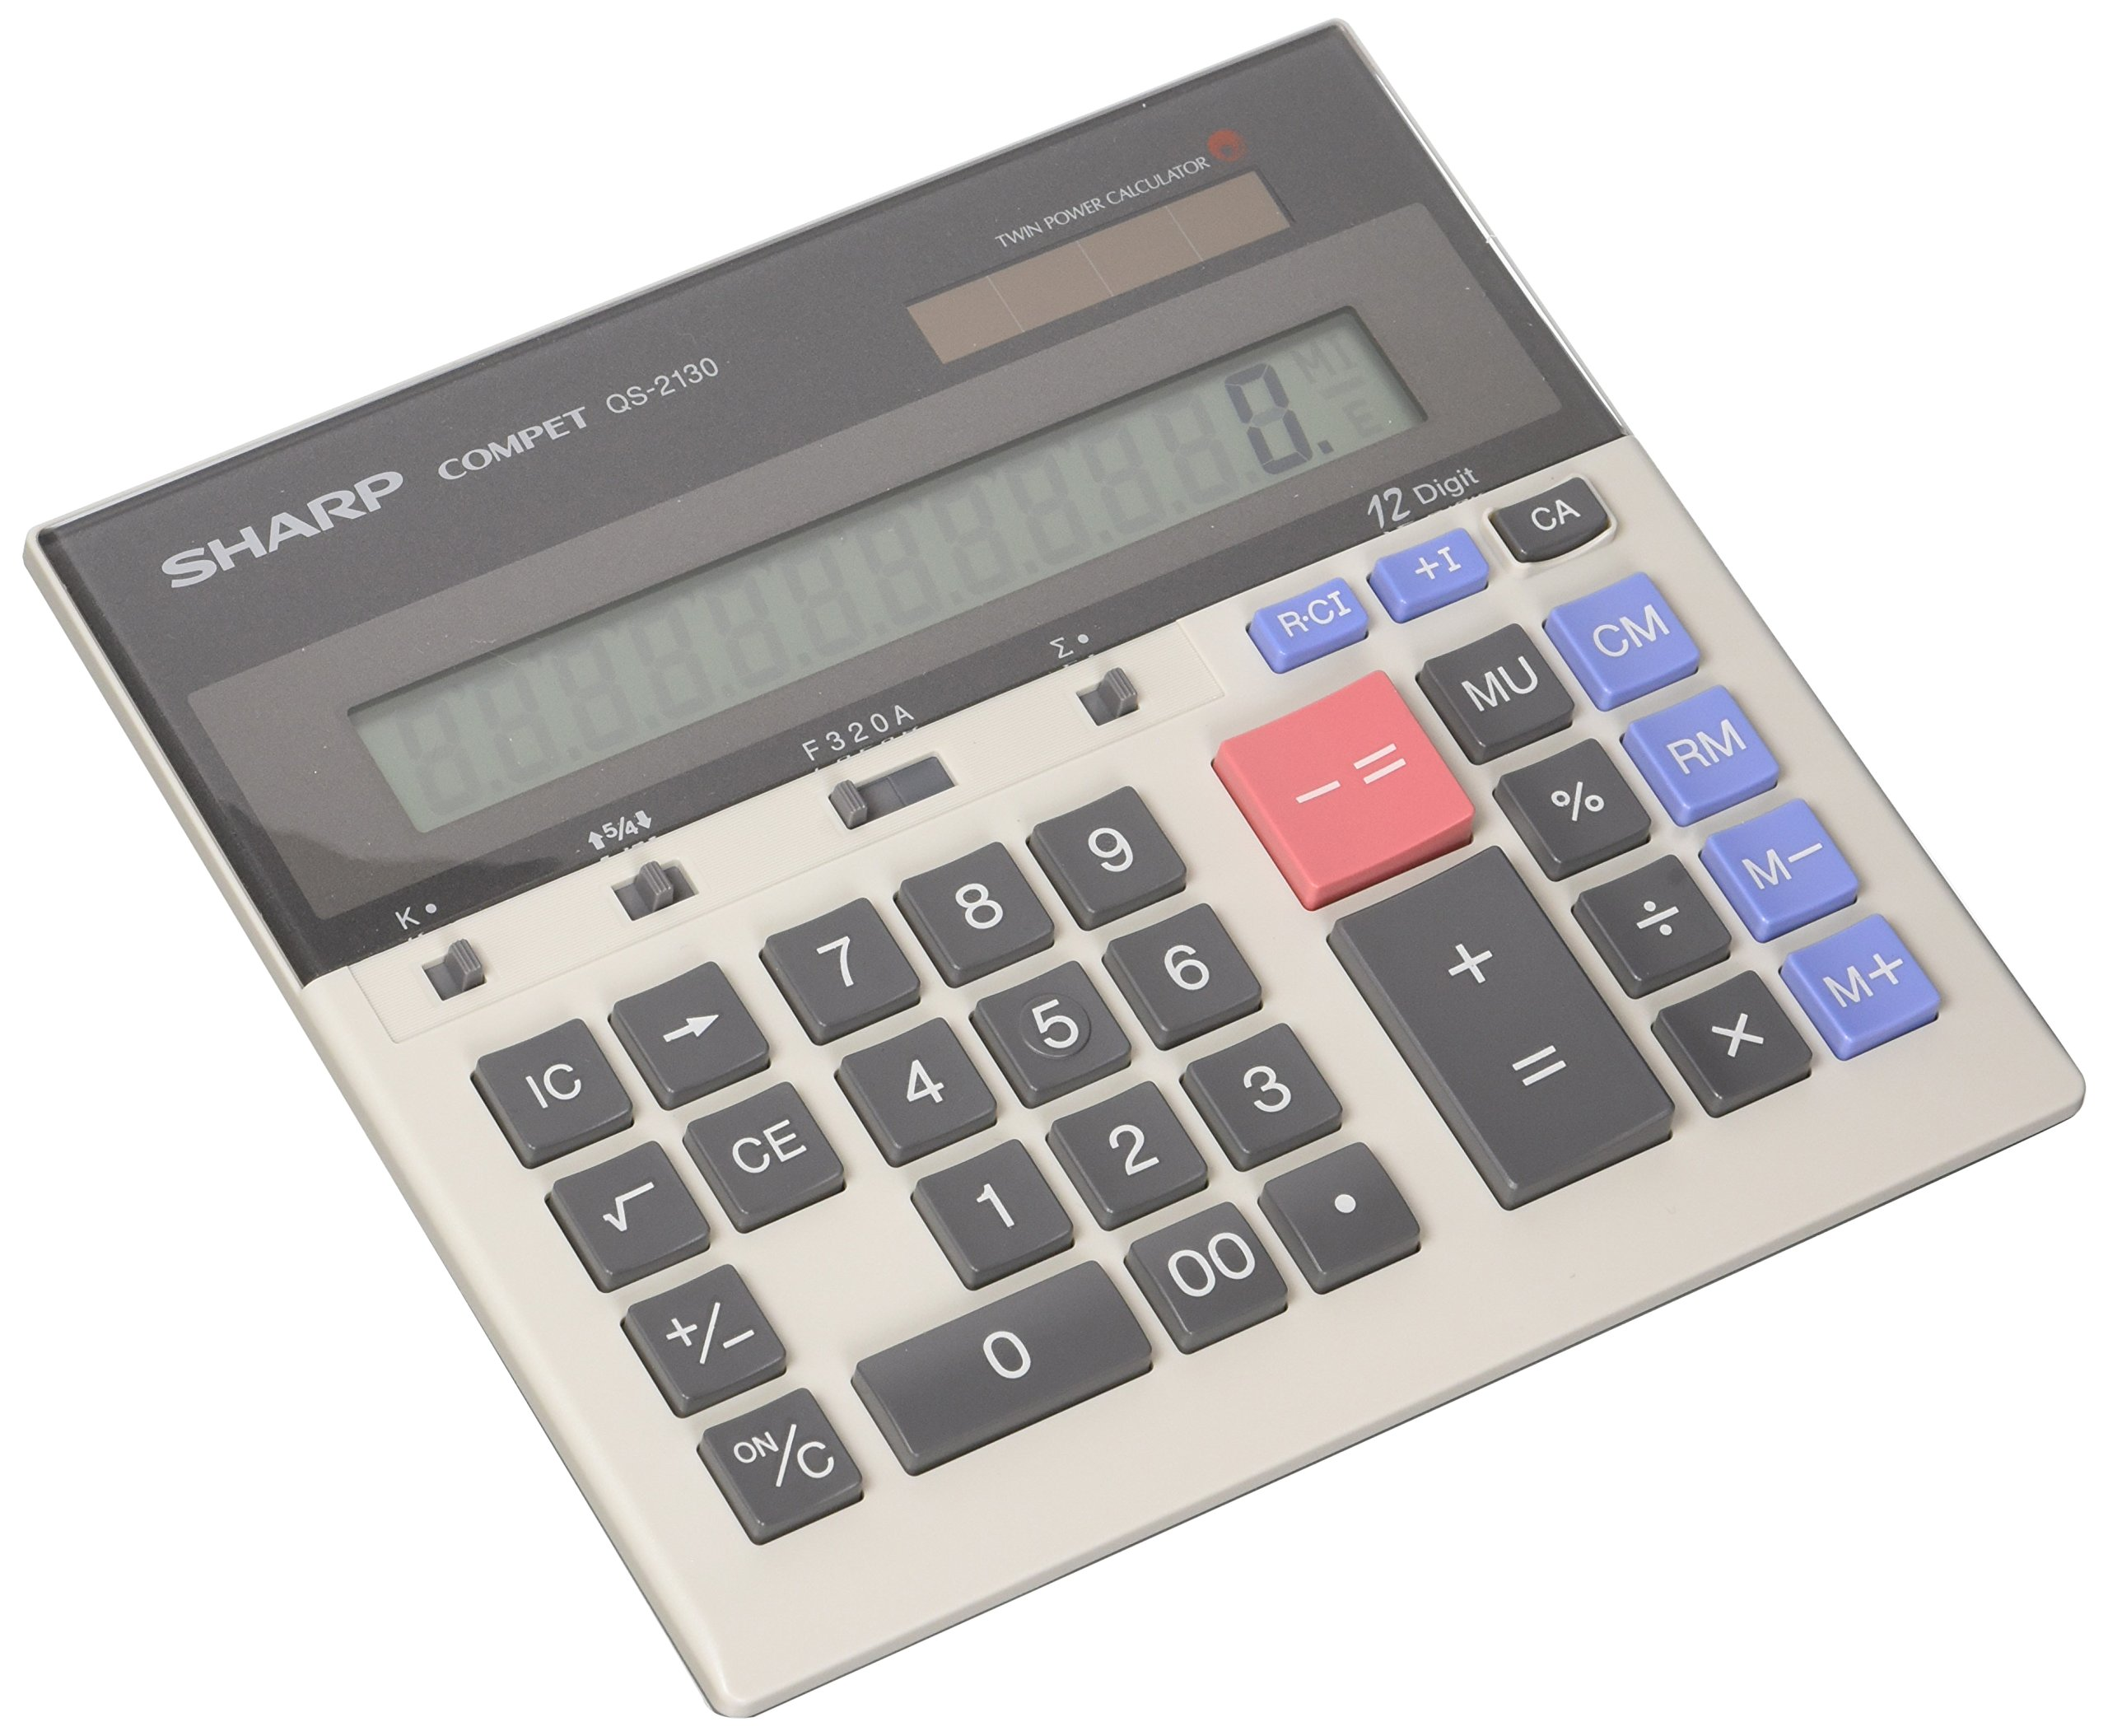 Sharp QS-2130 12 Digit Commercial Desktop Calculator with Kickstand, Arithmetic Logic by Sharp (Image #1)